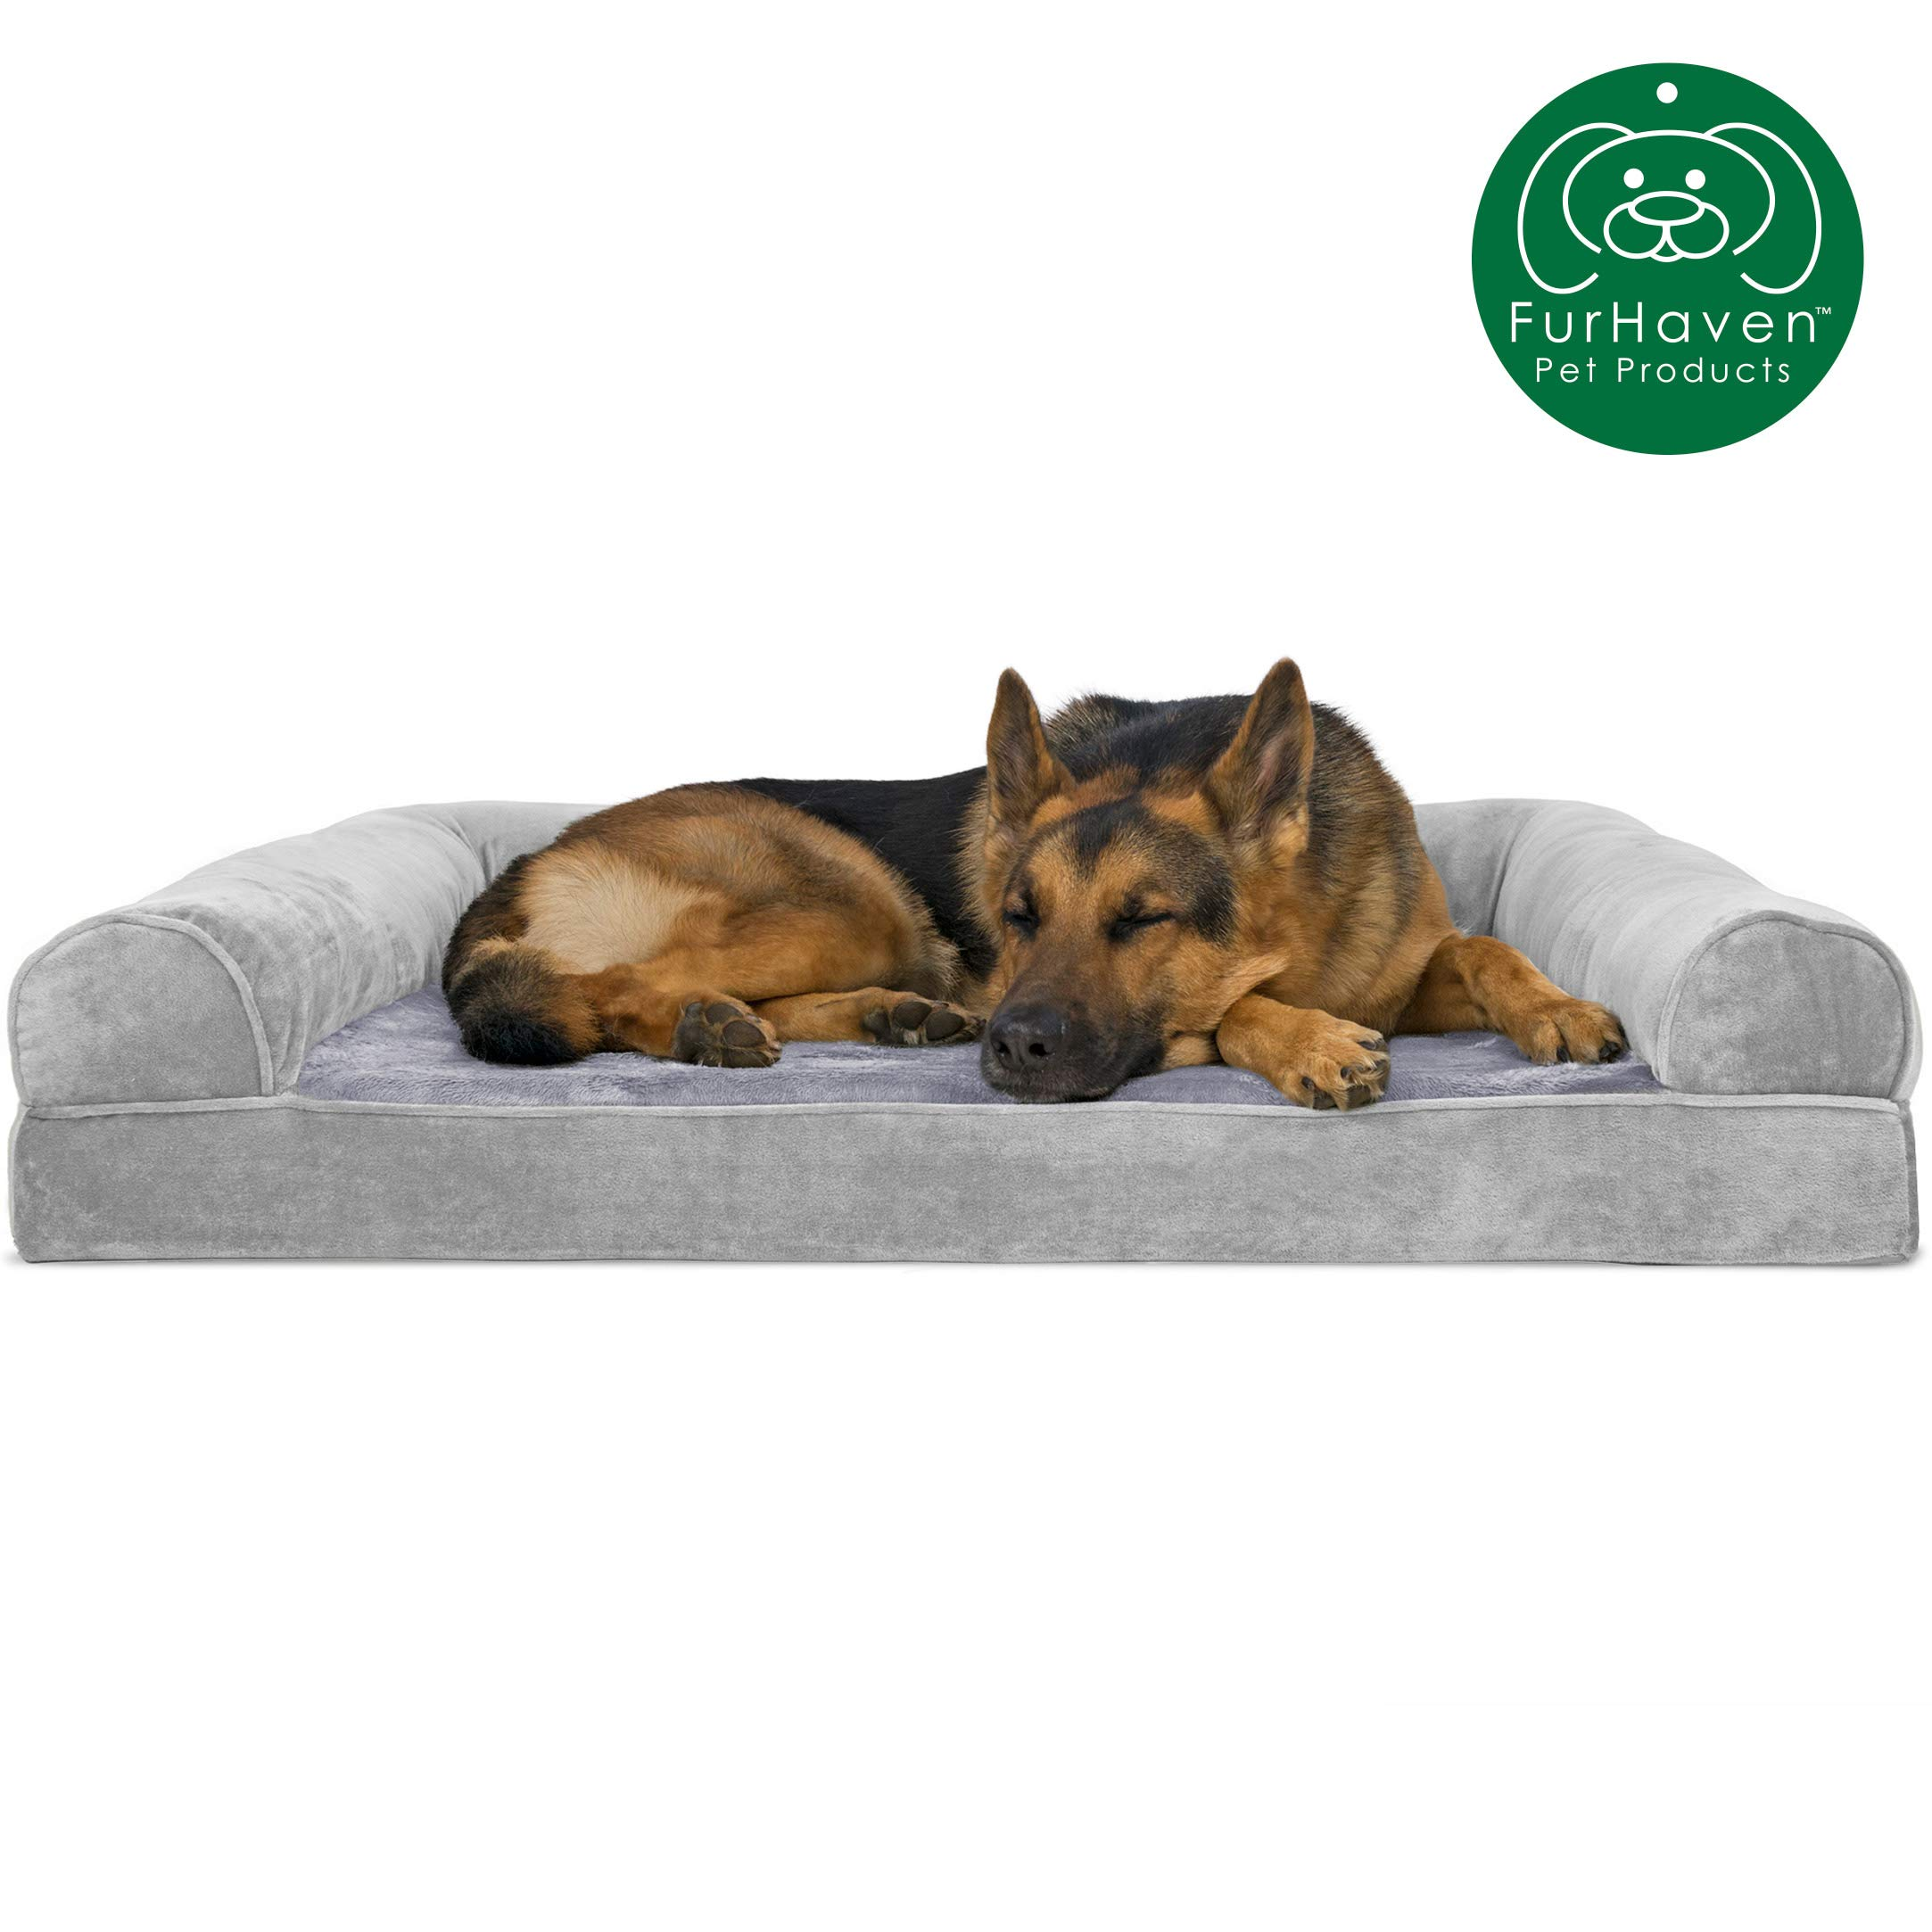 Furhaven Pet Dog Bed | Orthopedic Faux Fur & Velvet Traditional Sofa-Style Living Room Couch Pet Bed w/ Removable Cover for Dogs & Cats, Smoke Gray, Jumbo by Furhaven